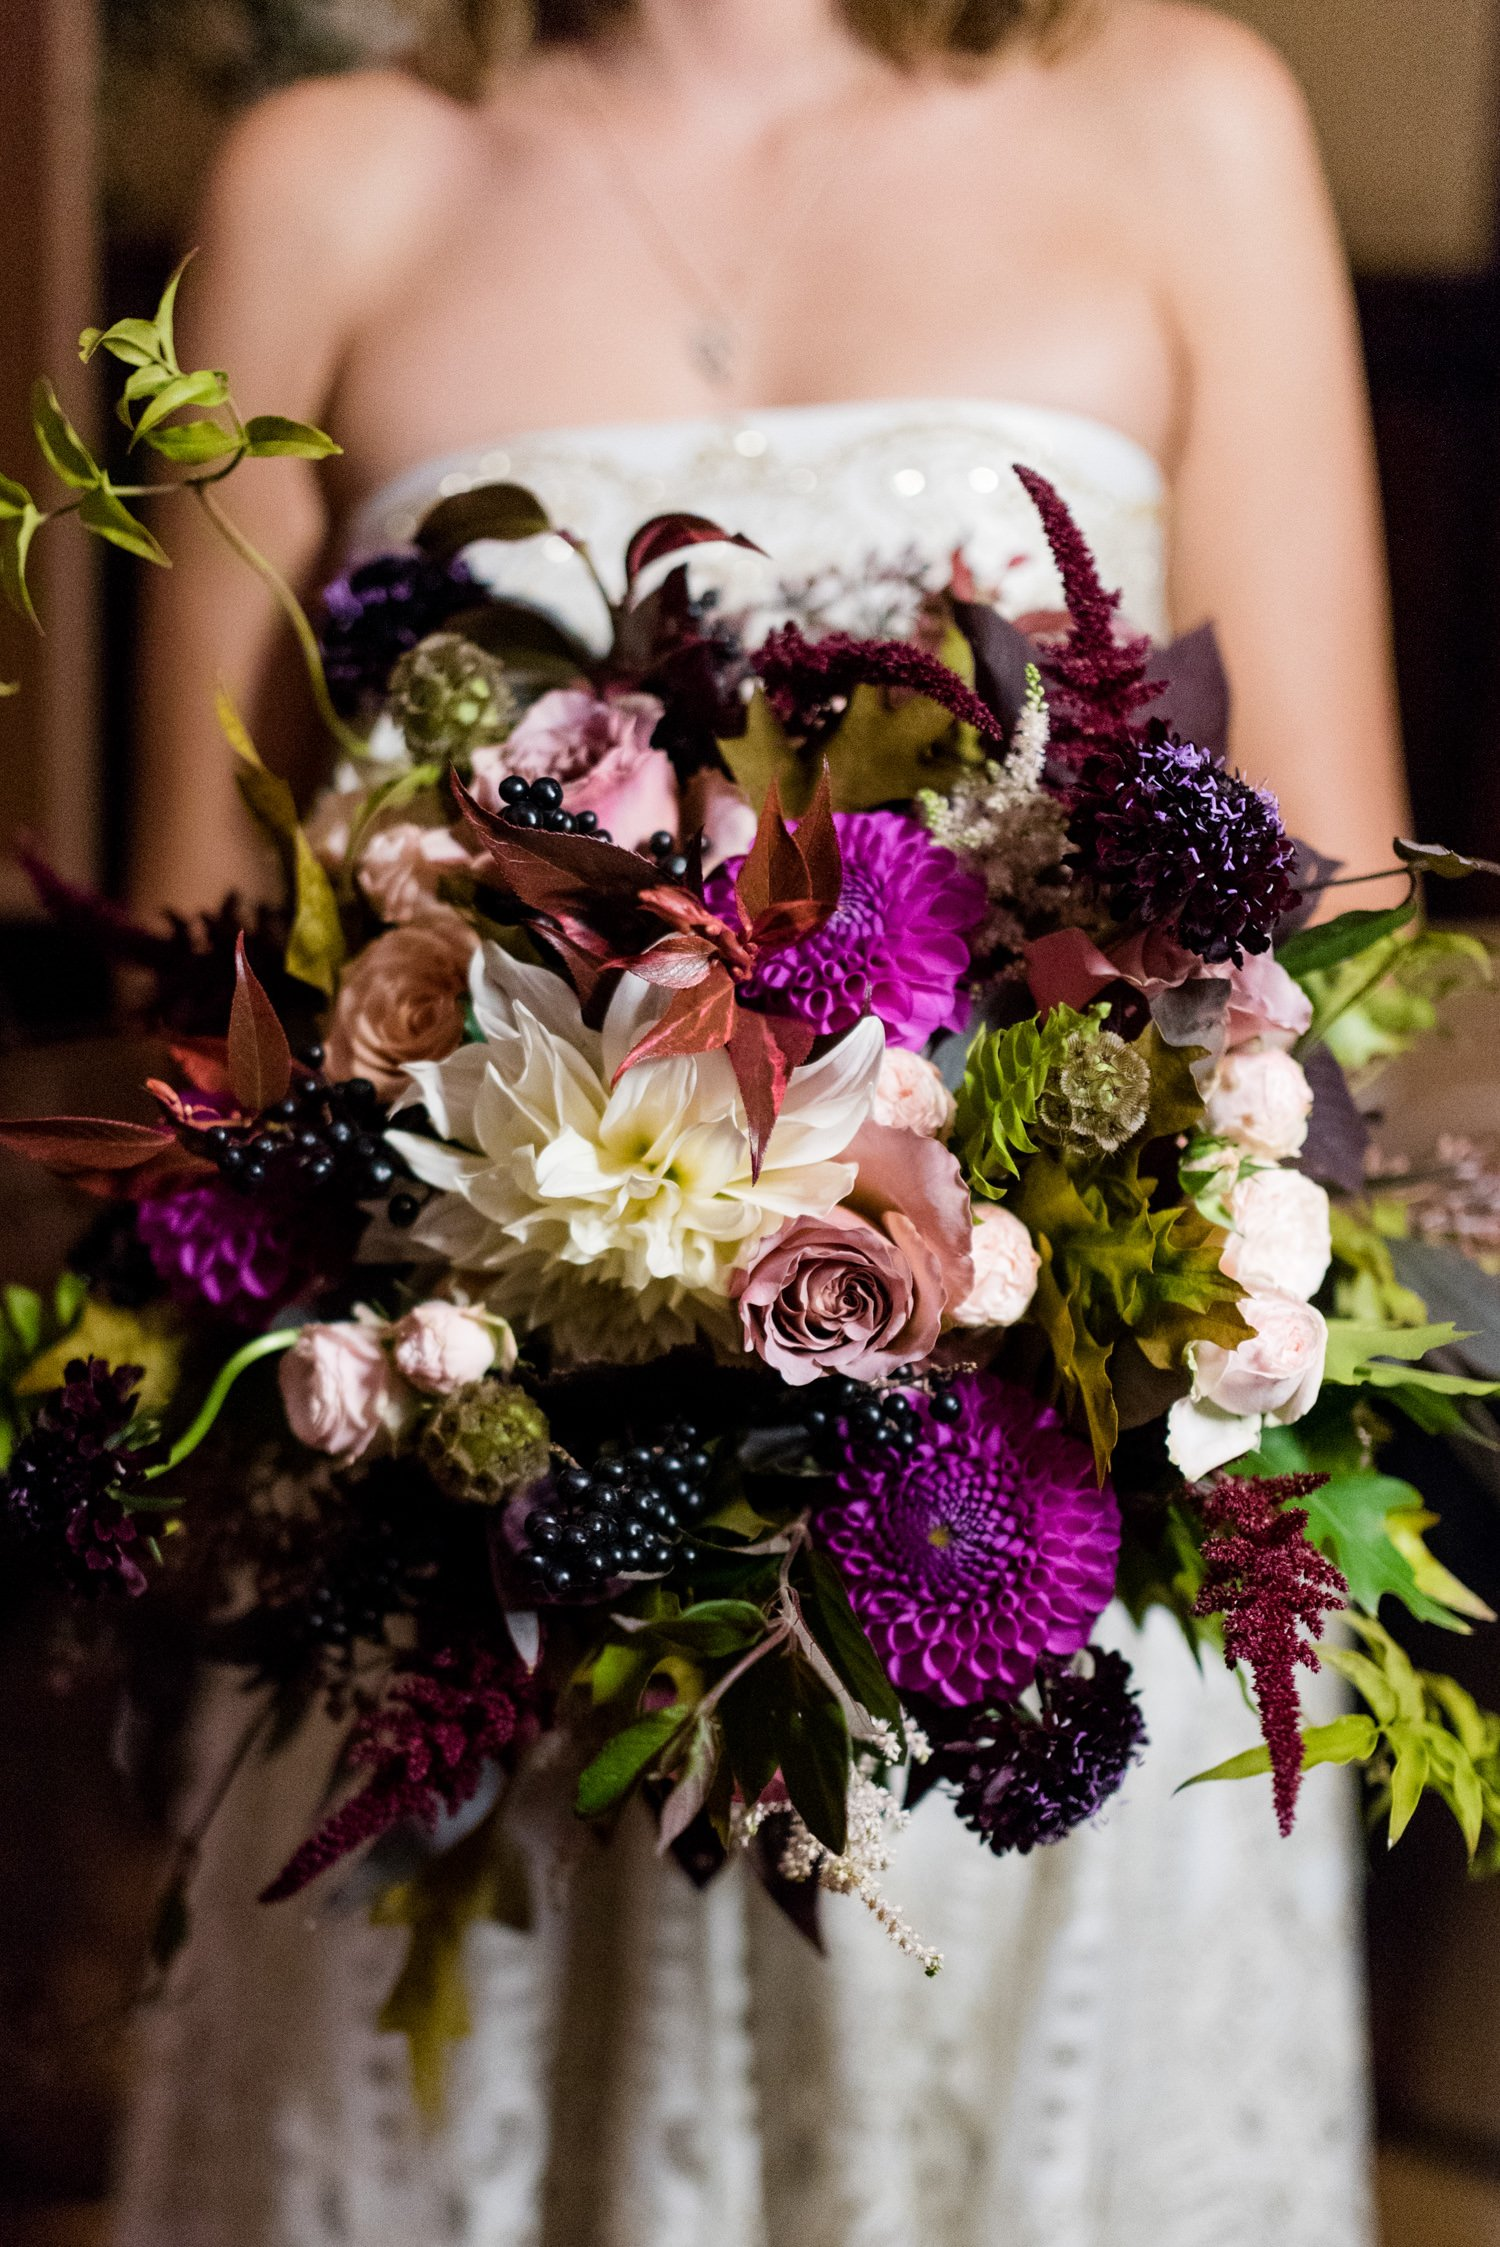 Beautiful Flowers by Passion bridal bouquet Bath for a Roman Baths Wedding Photographer